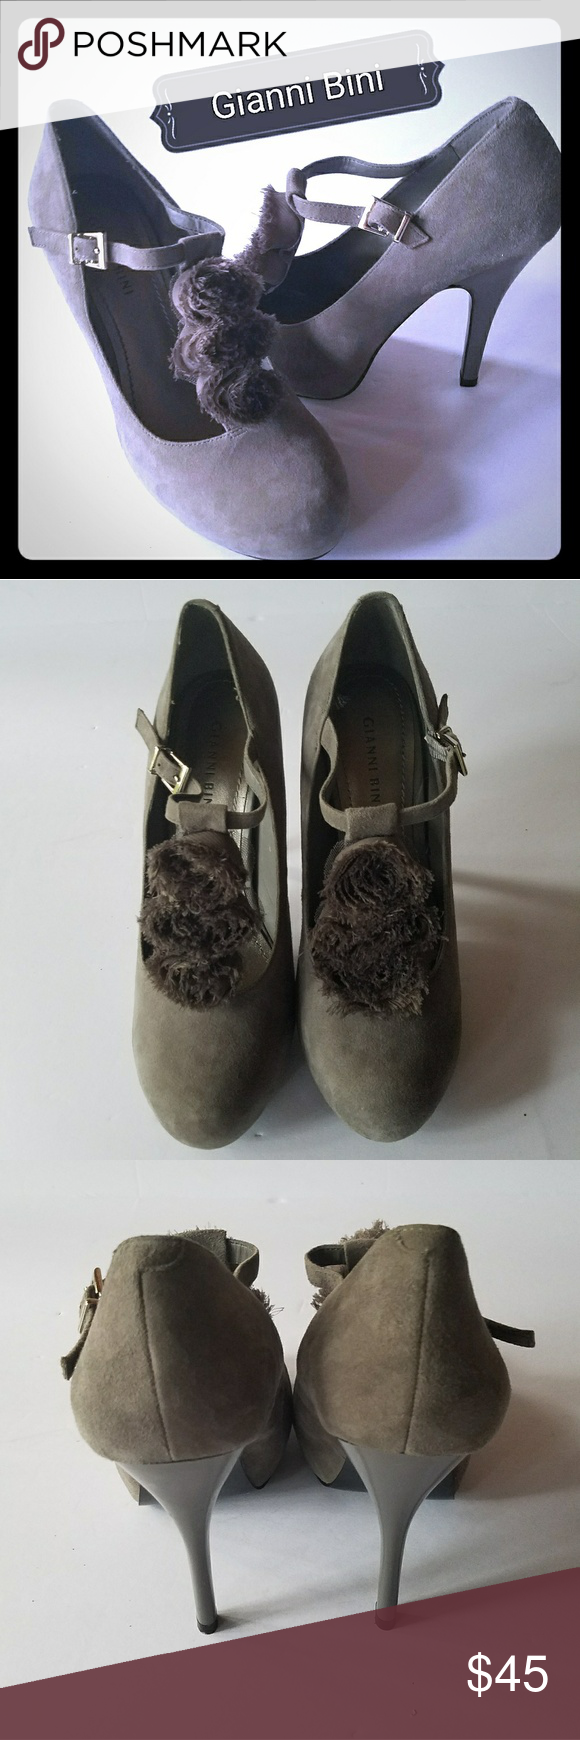 """New Gray T-Strap Heels by Gianni Bini Genuine grey suede t-strap adjustable with flower accent 4.5"""" heels. New never been worn excellent condition size 9. Due to foot injury selling all my heels. Gianni Bini Shoes Heels"""